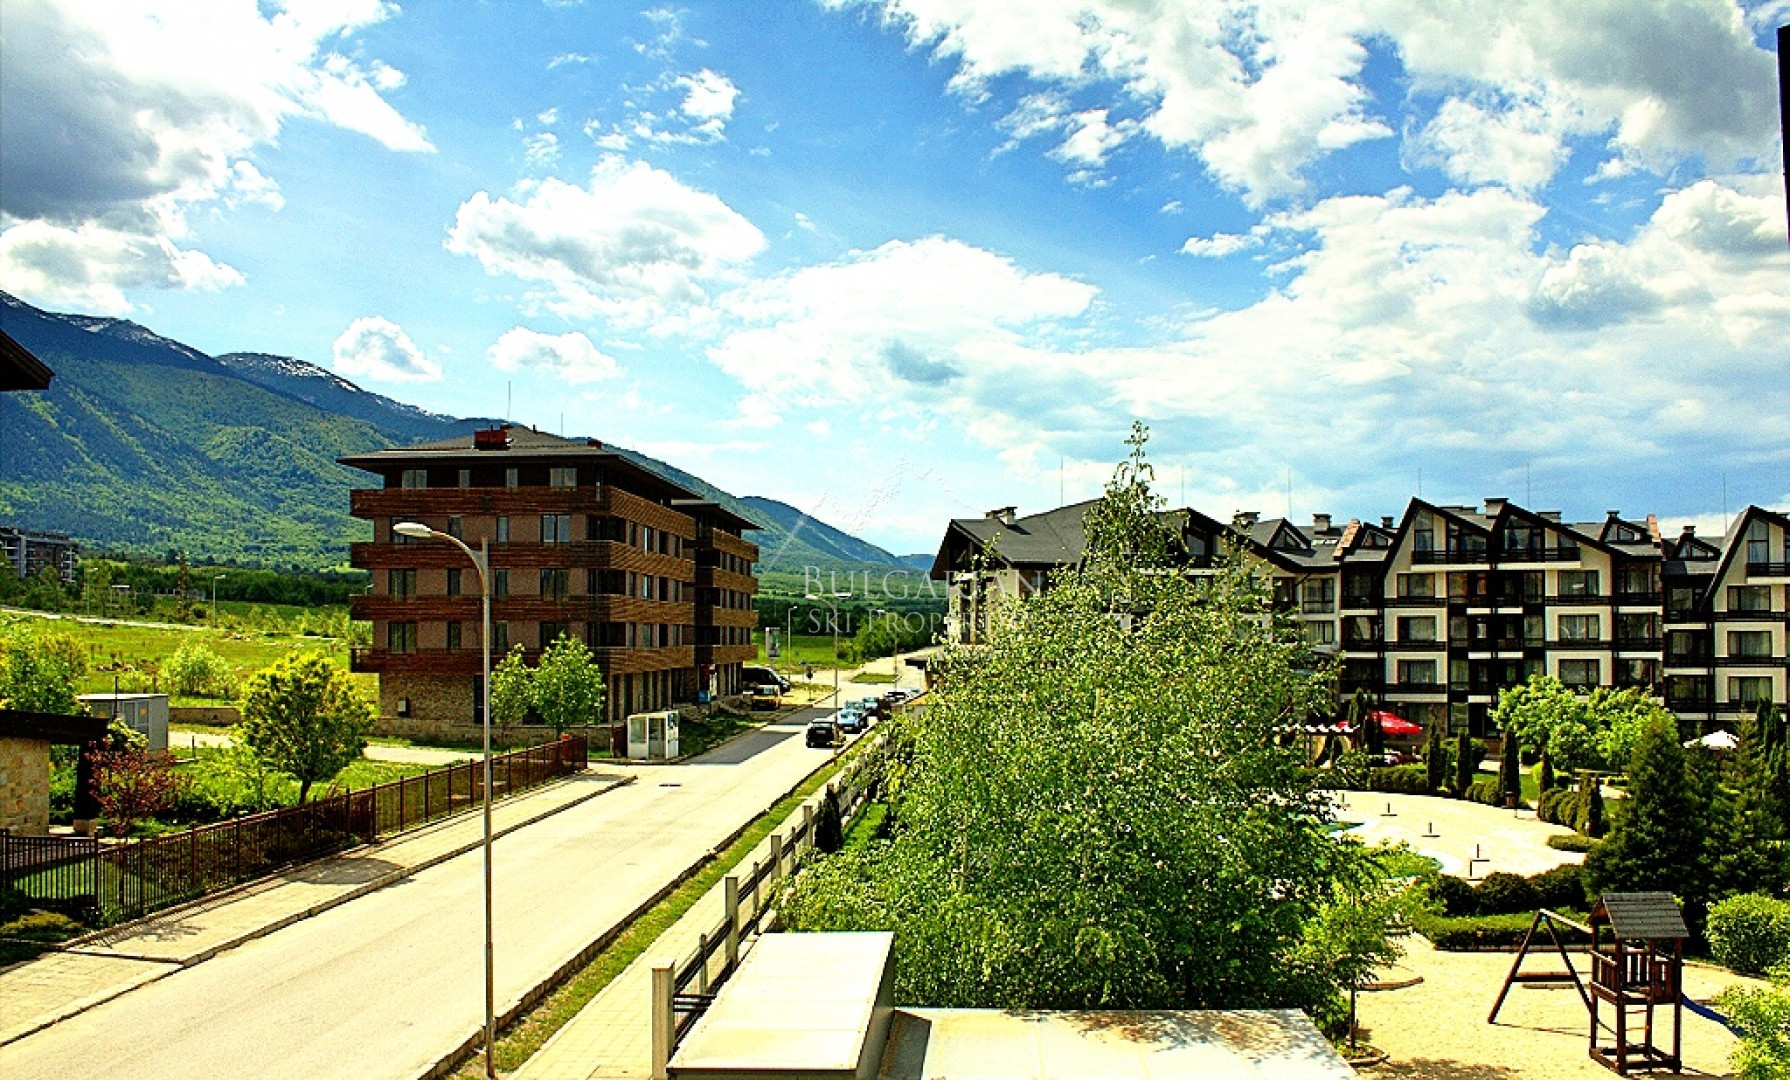 Aspen Golf, Bansko: two-bedroom apartment with mountain views for sale